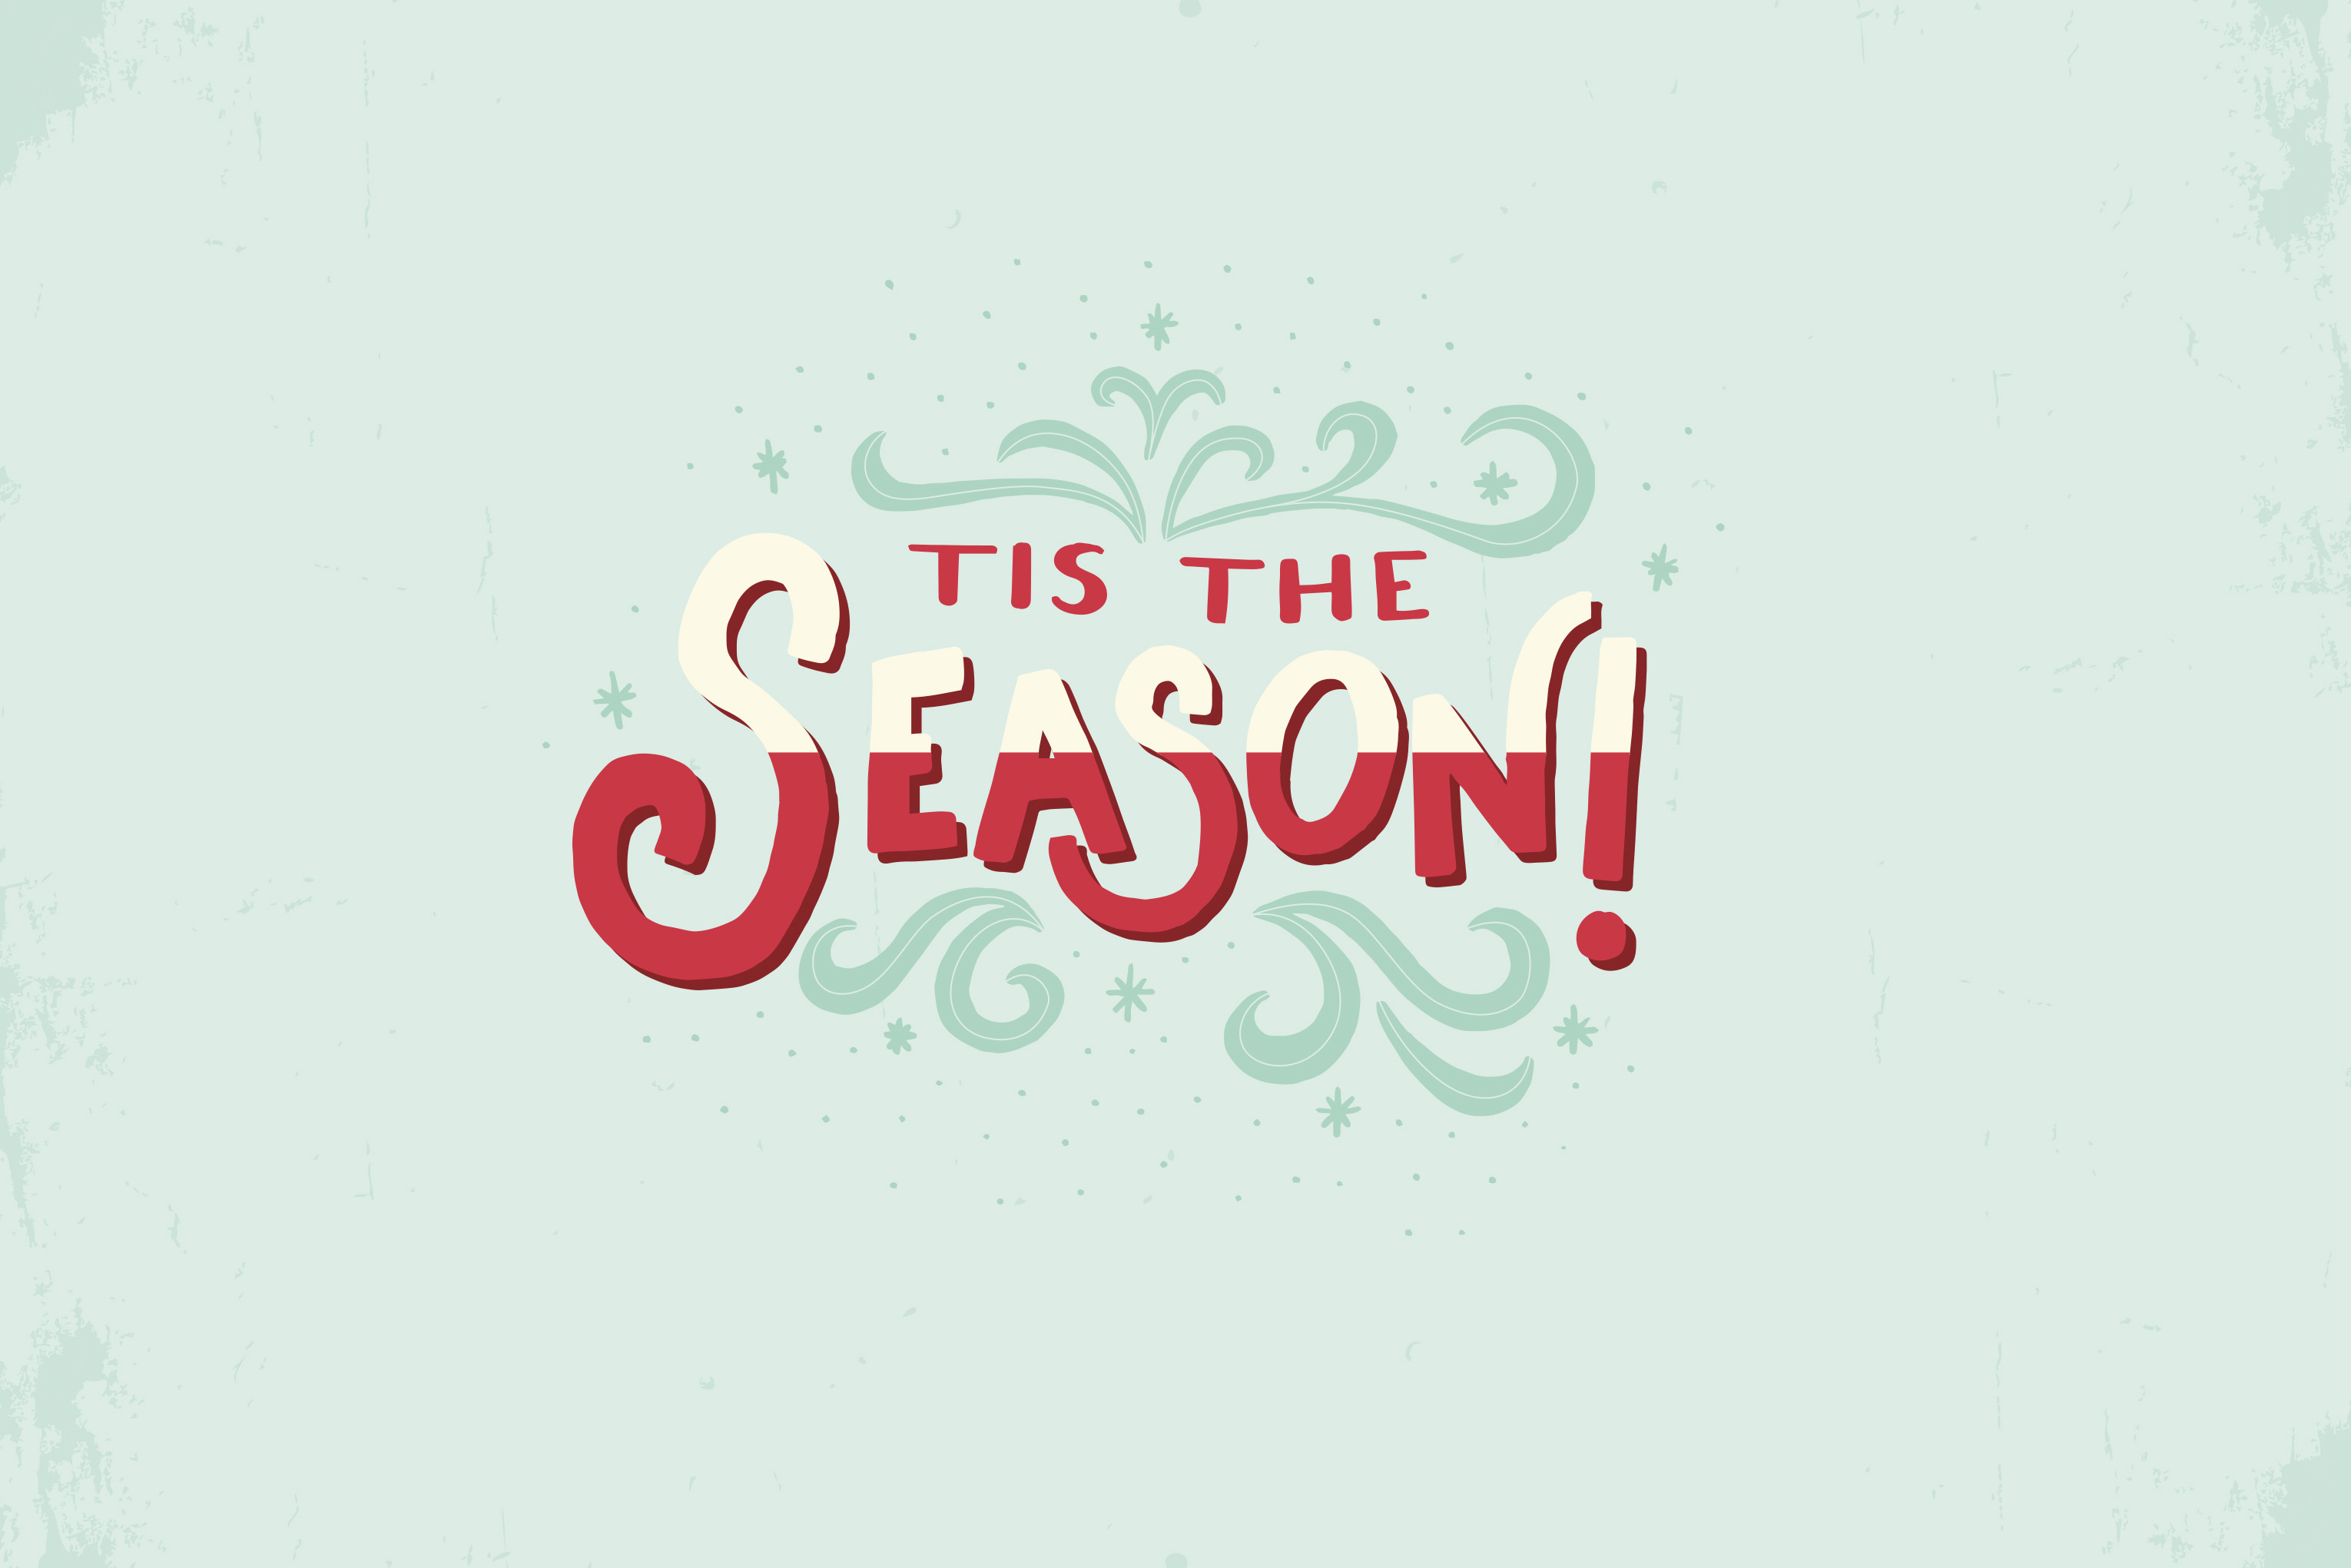 Tis-the-season-Wallpapers